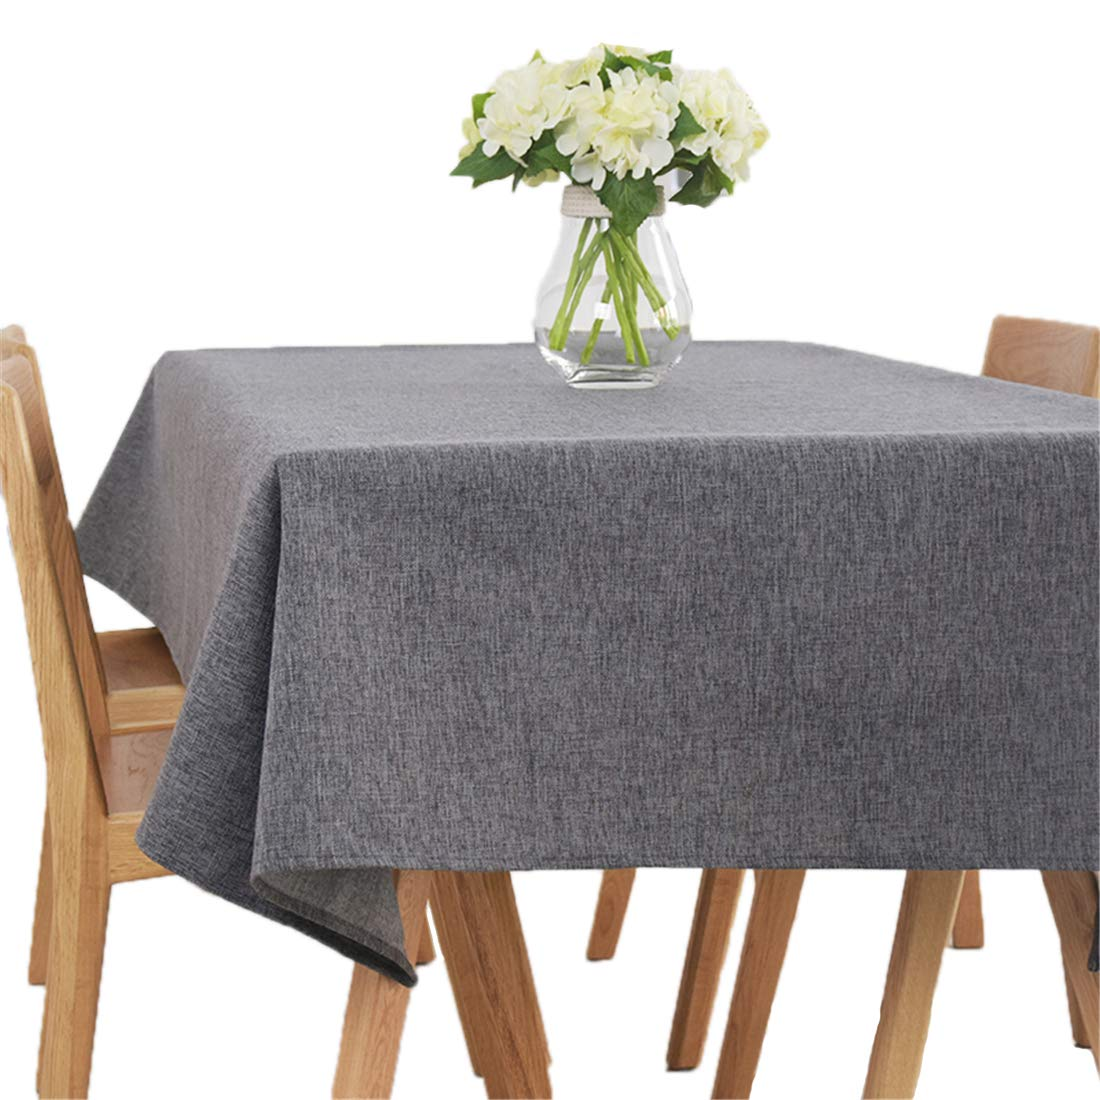 Ethomes Simple Modern Plain Cotton Linen Solid Color Tablecloth Wedding Party Outdoor Barbecue Picnic Dark Grey Table Cover Approx 39x55inch 100x140cm